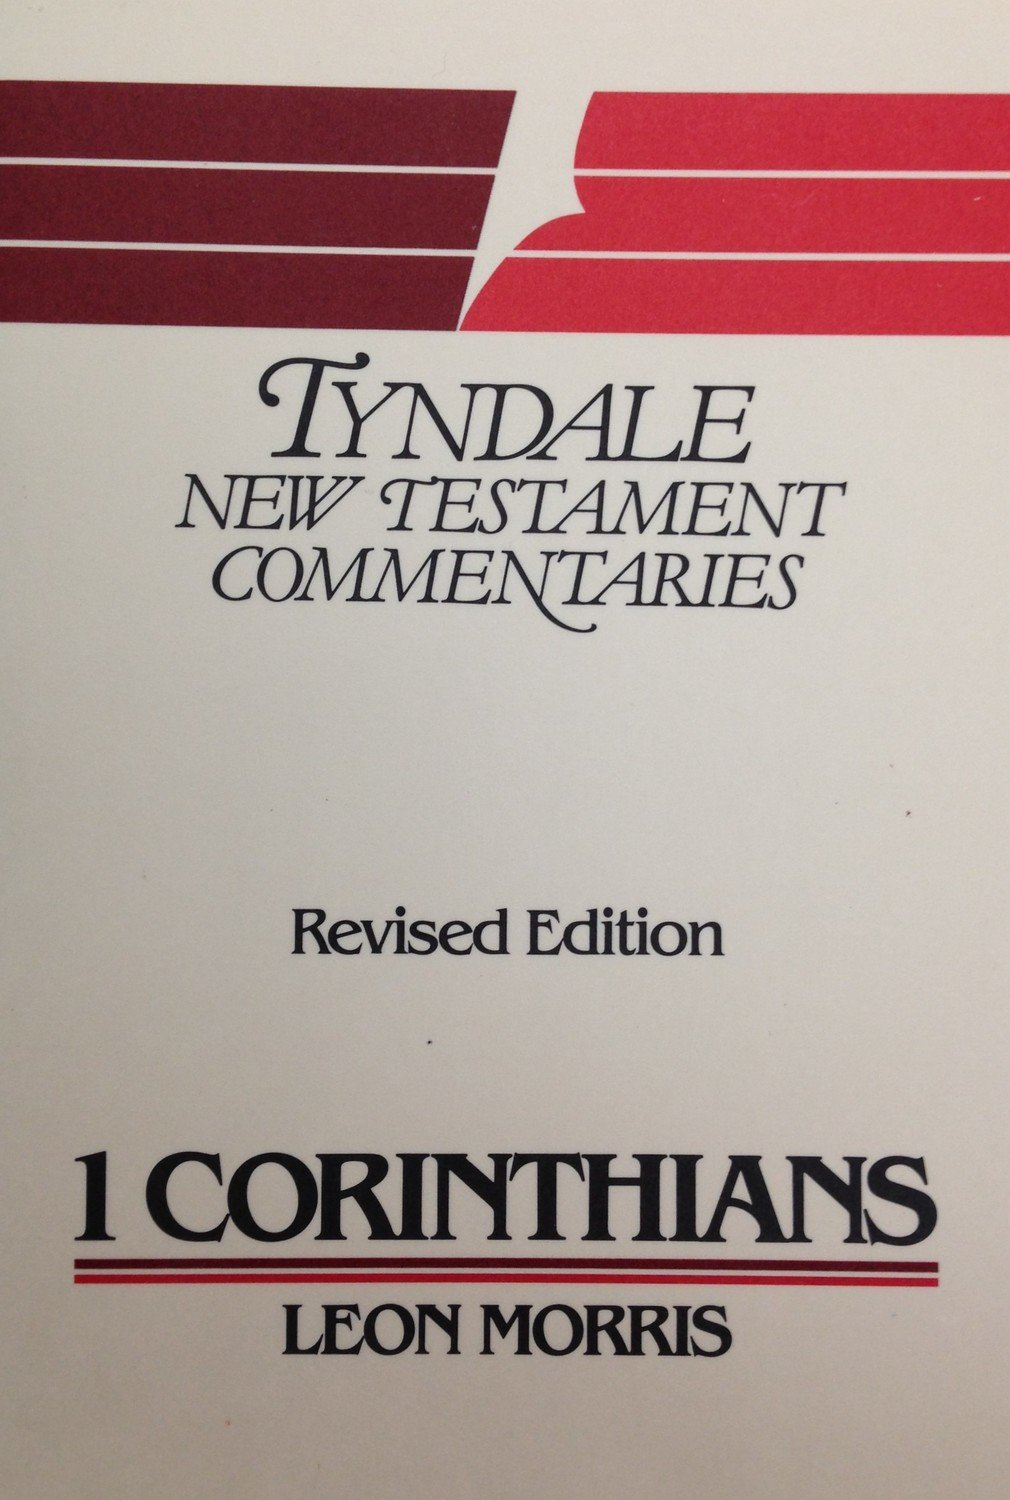 Tyndale New Testament Commentaries: I Corinthians by Leon Morris (USED)